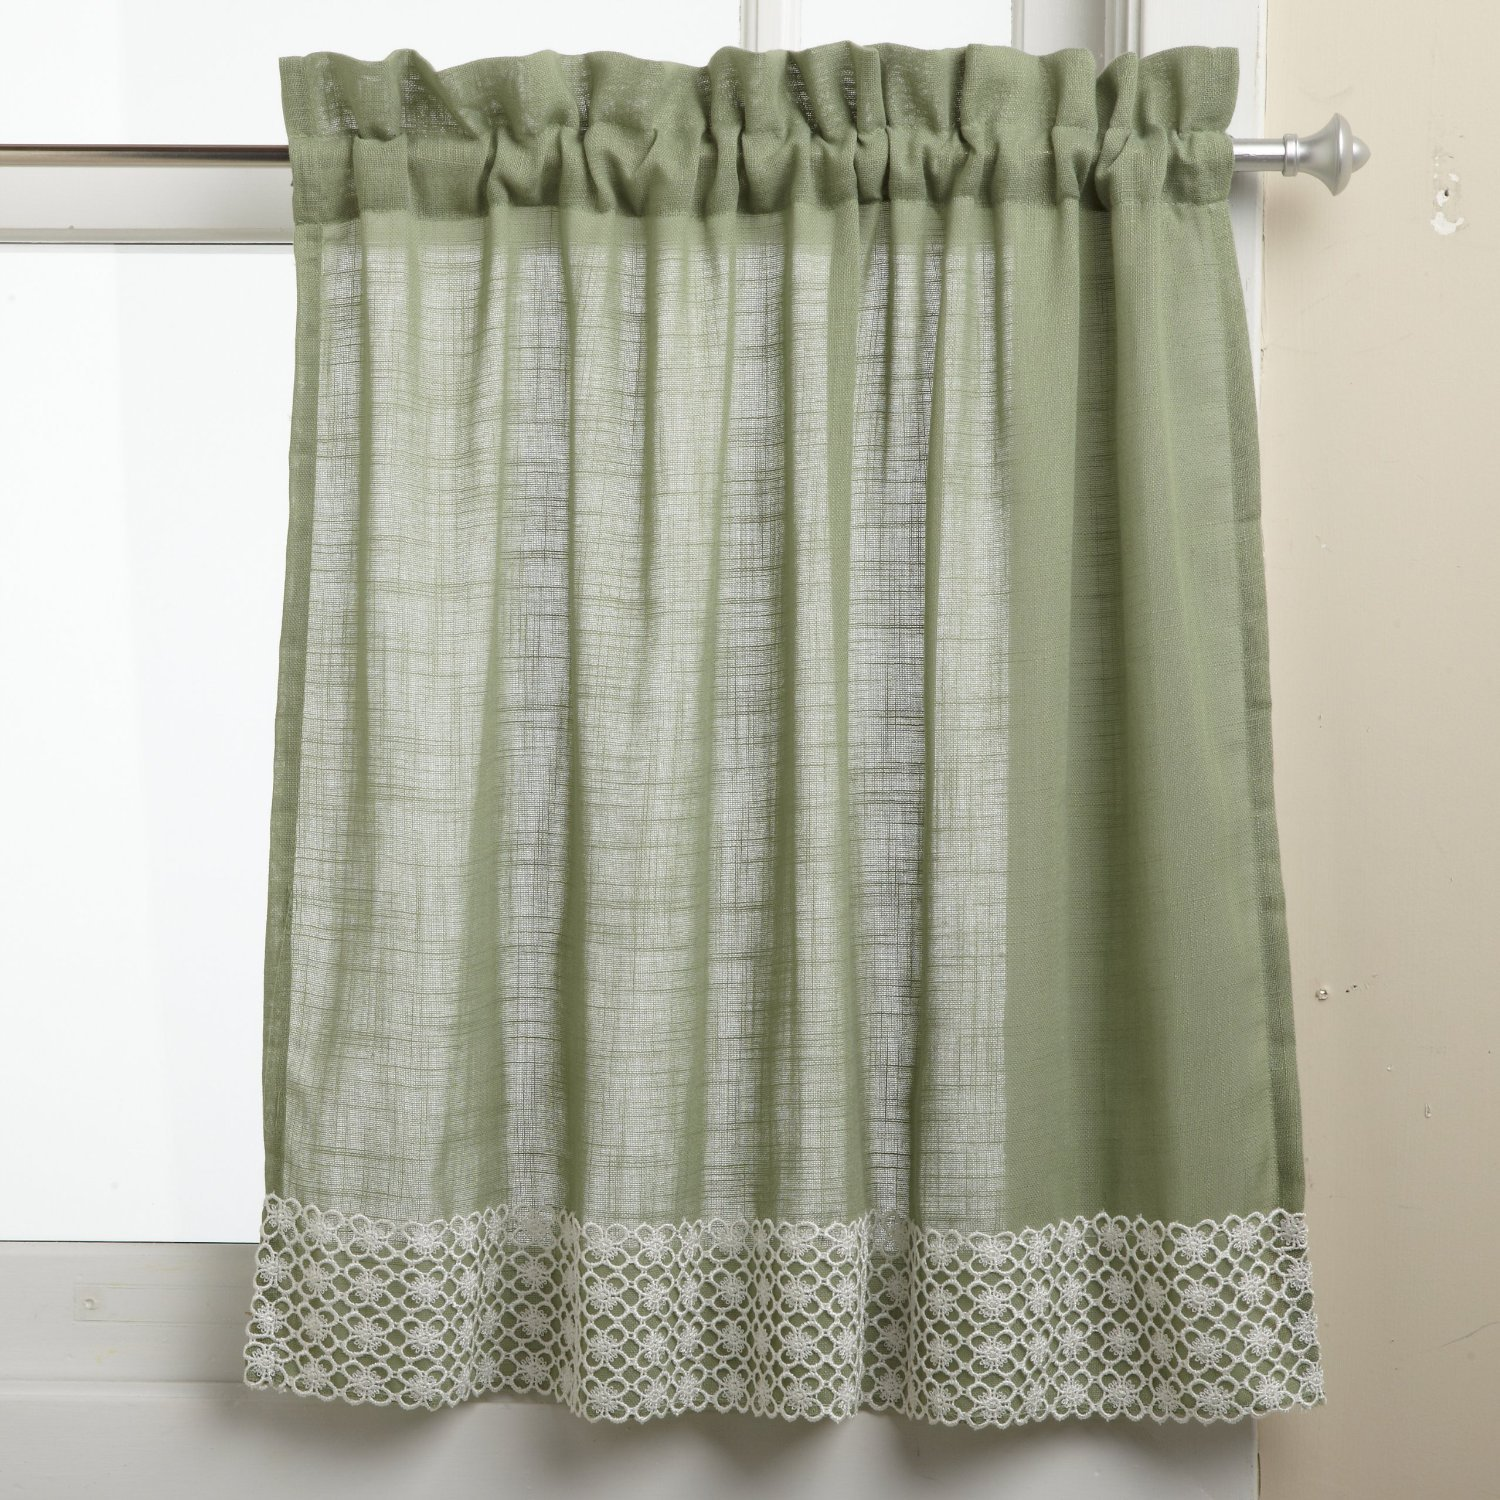 Green Kitchen Curtain Ideas: Half Window Curtains Ideas